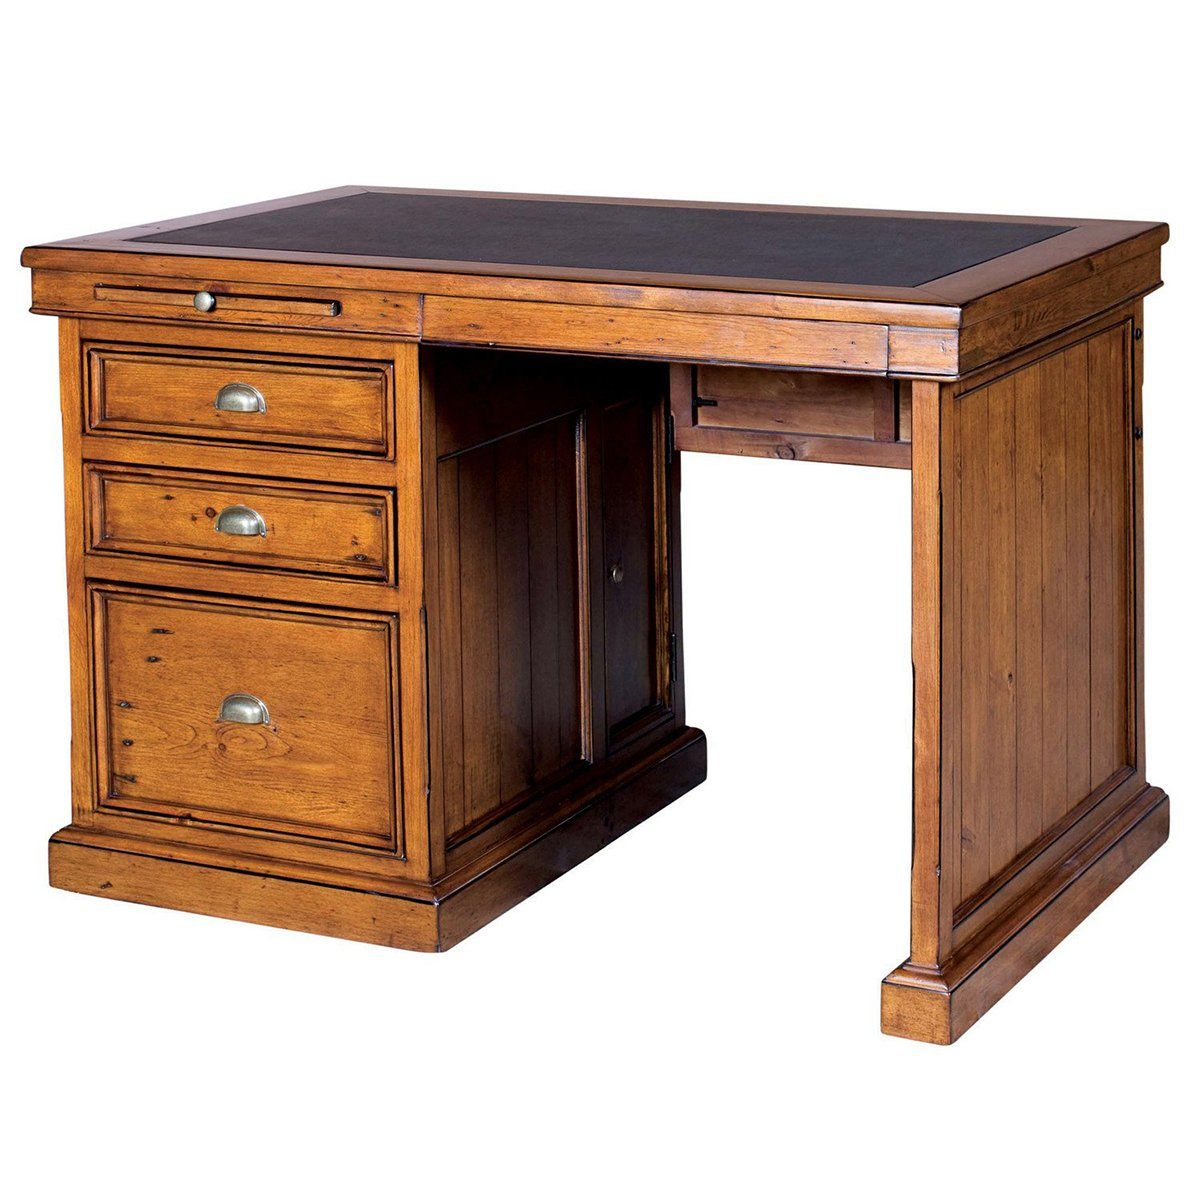 LH Lifestyle Single Desk - African Dusk Call us and get up to 25% off this item. 403.460.8114 - Showhome Furniture